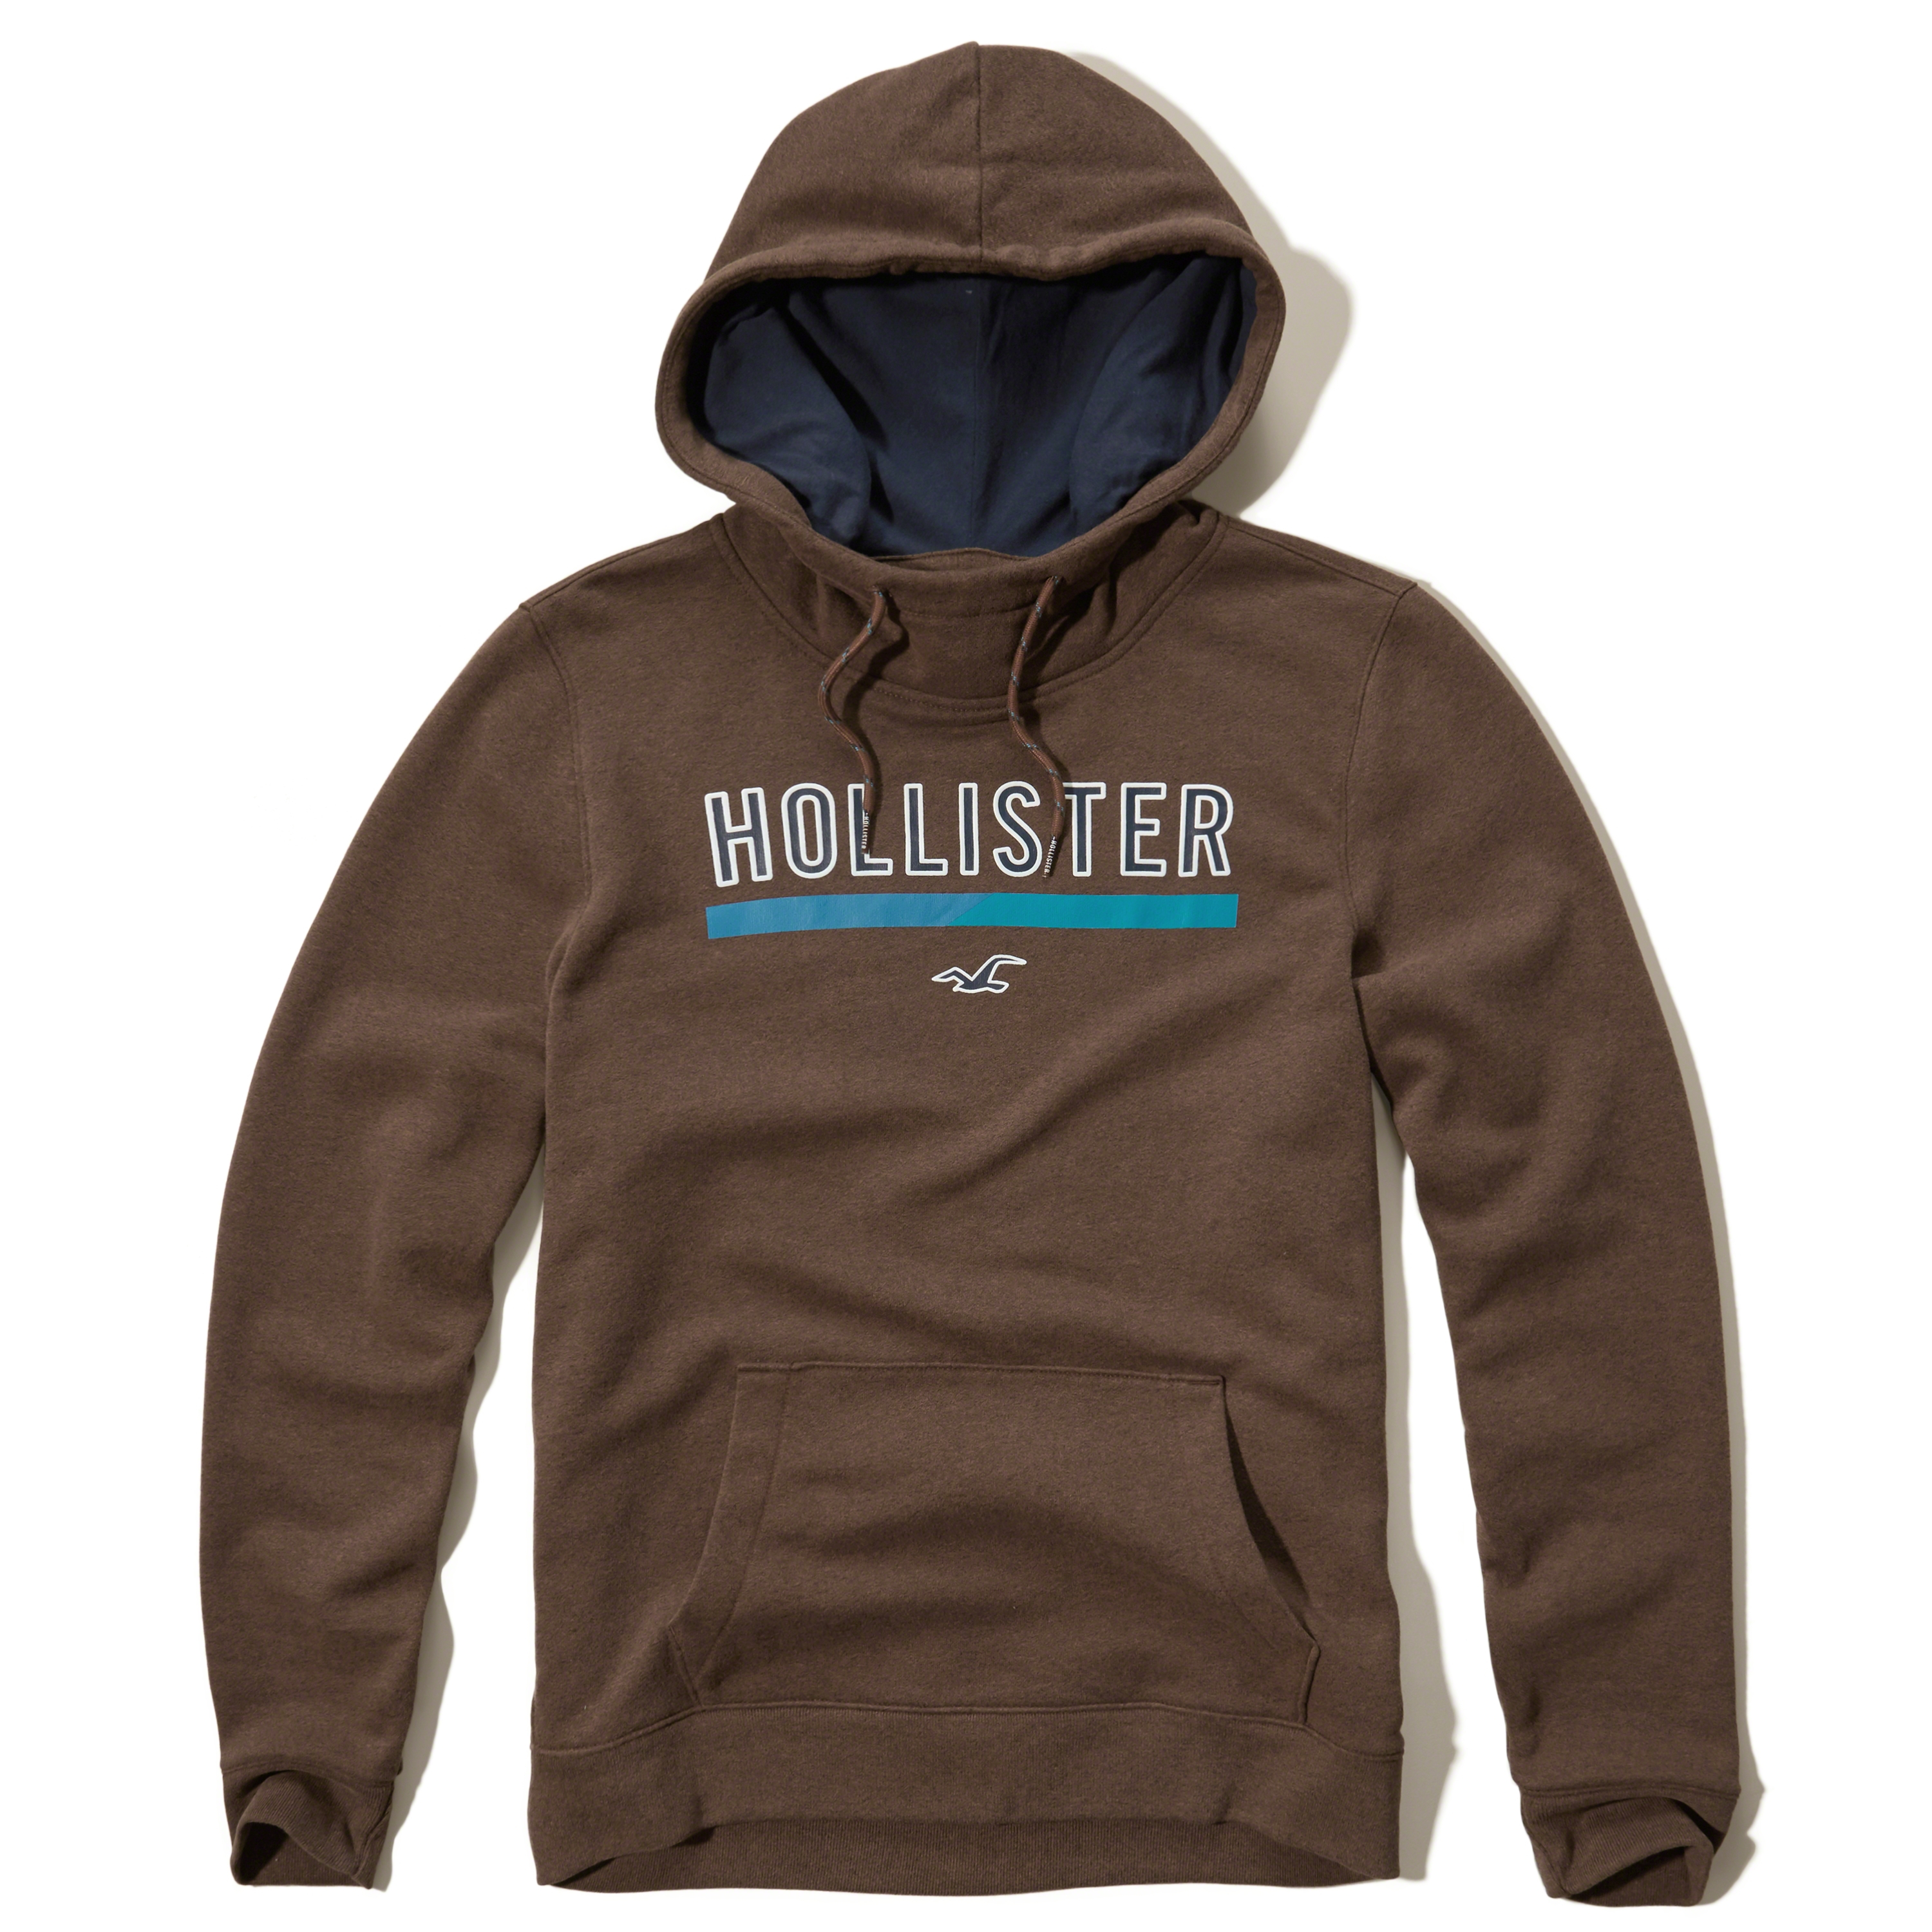 Hollister Sweaters Hollister Hoodies Hollister Shirts Hollister Jacket Hollister Pants Hollister Jeans: Hollister Printed Logo Graphic Hoodie In Brown For Men